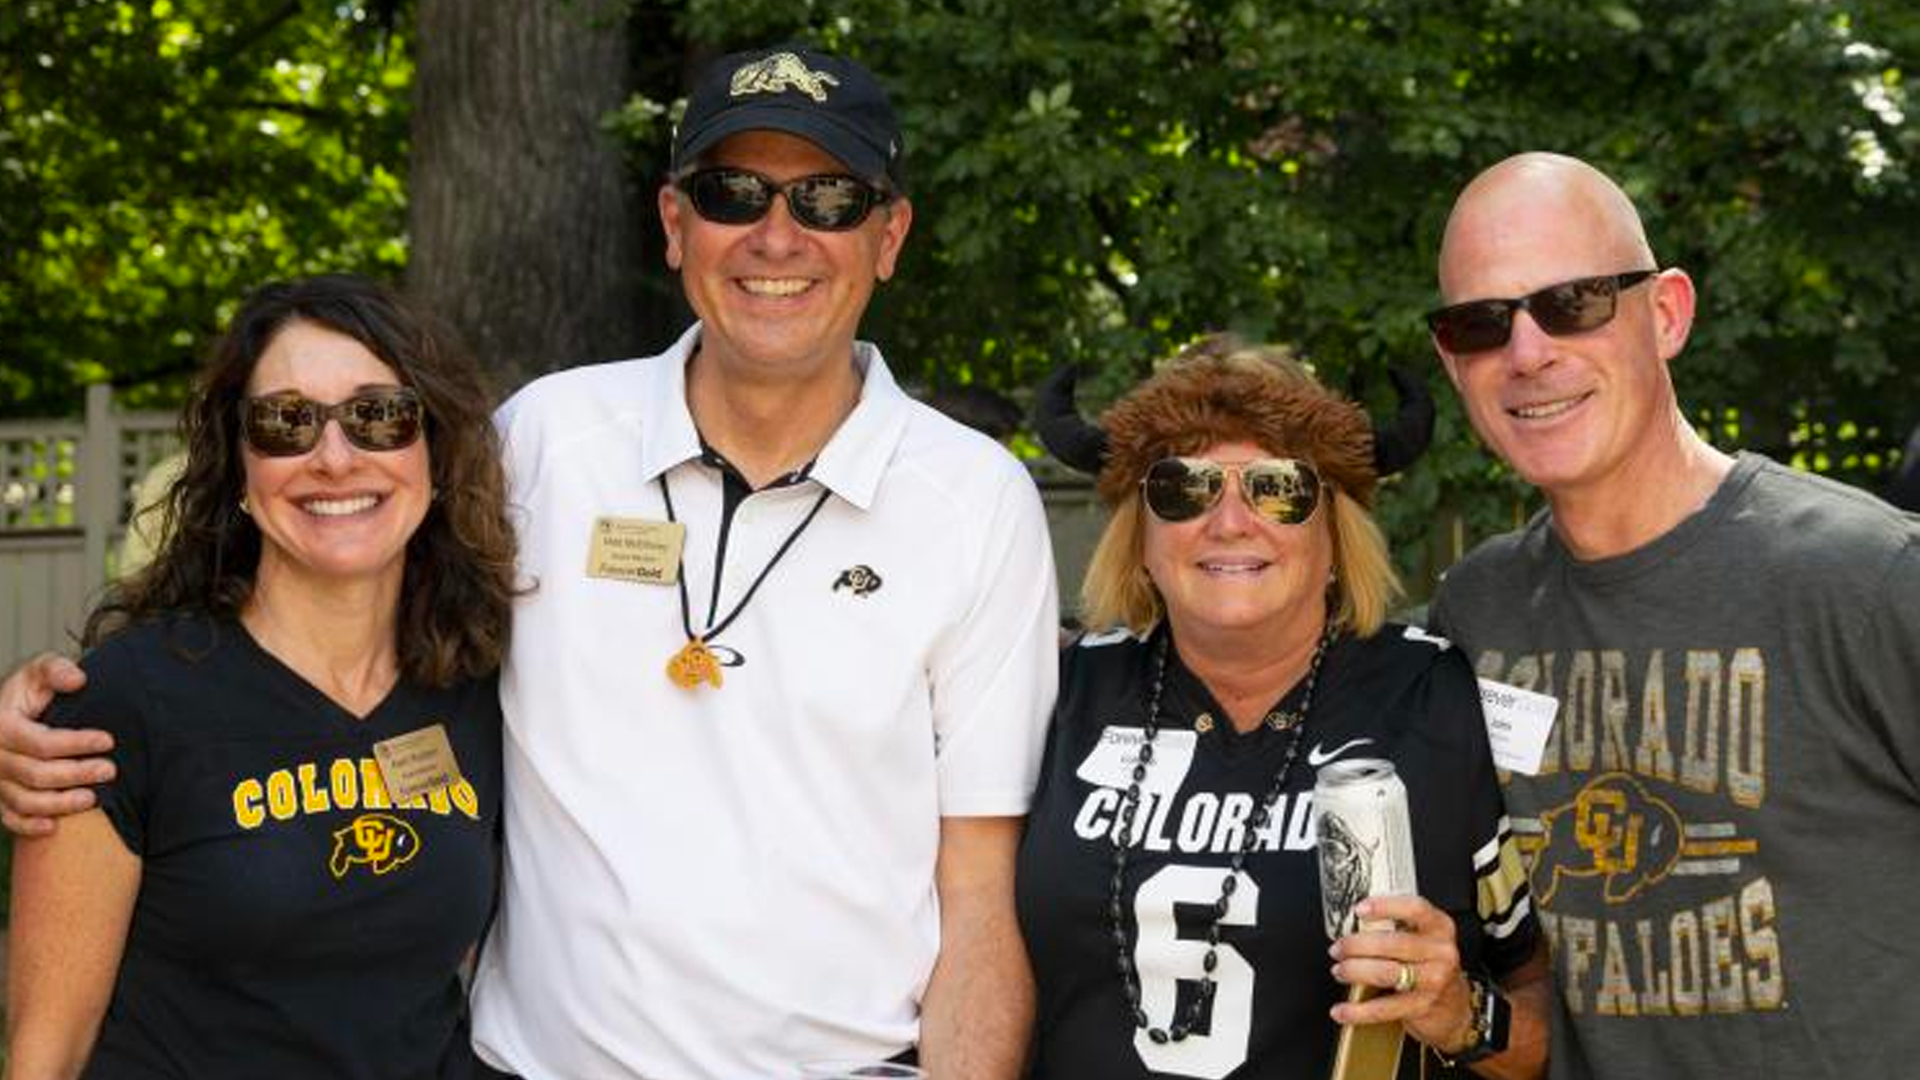 CU Boulder alumni fans connecting at a football game